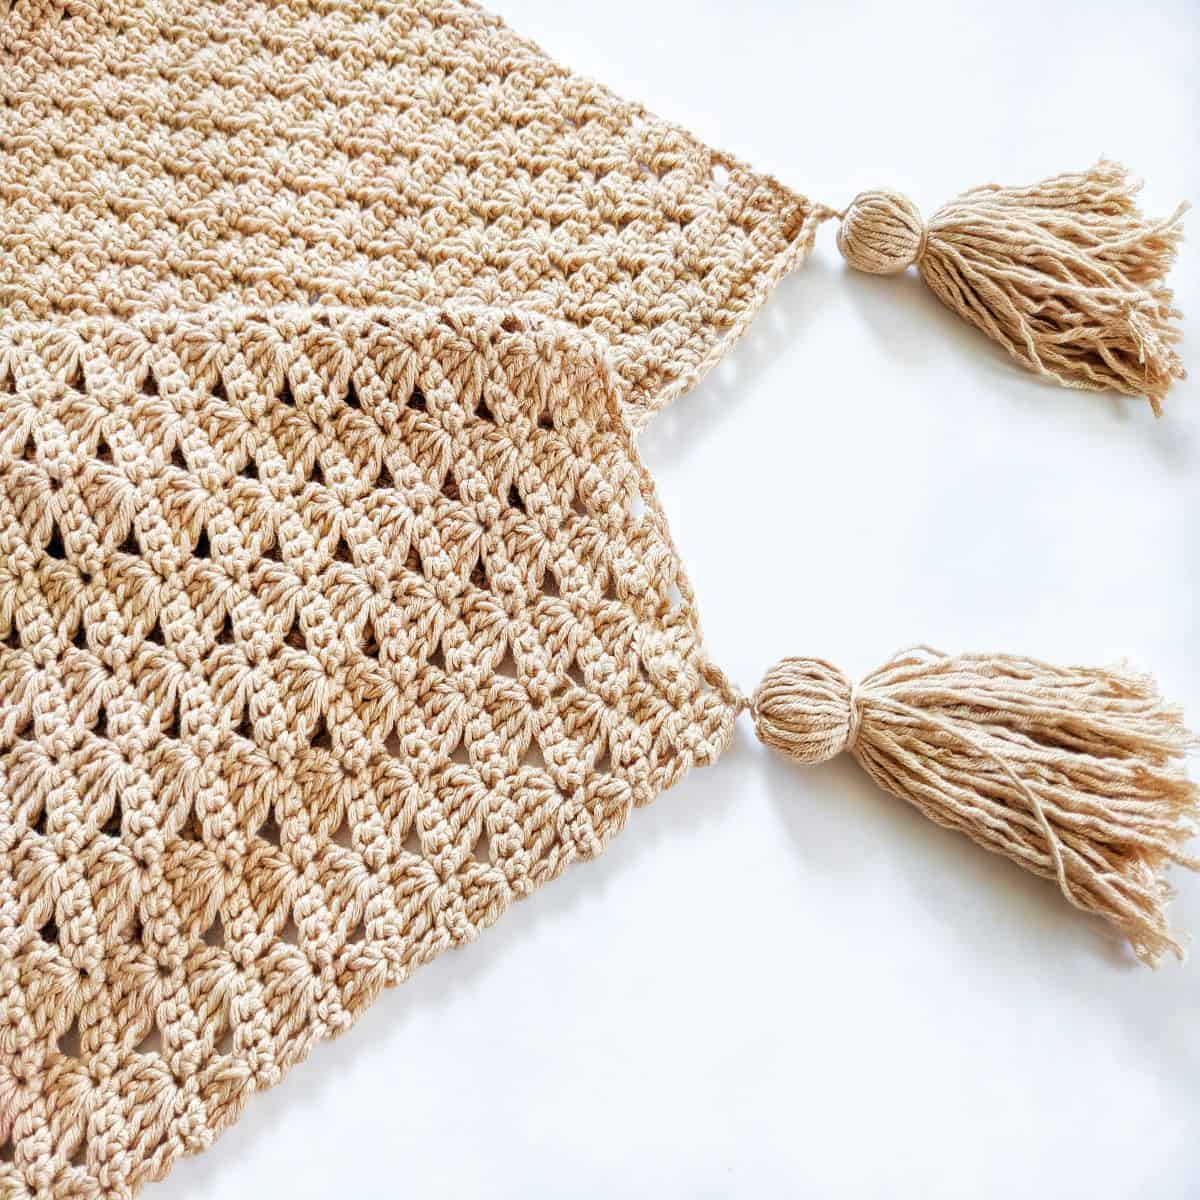 a crochet blanket with two cotton bamboo tassels on a white surface